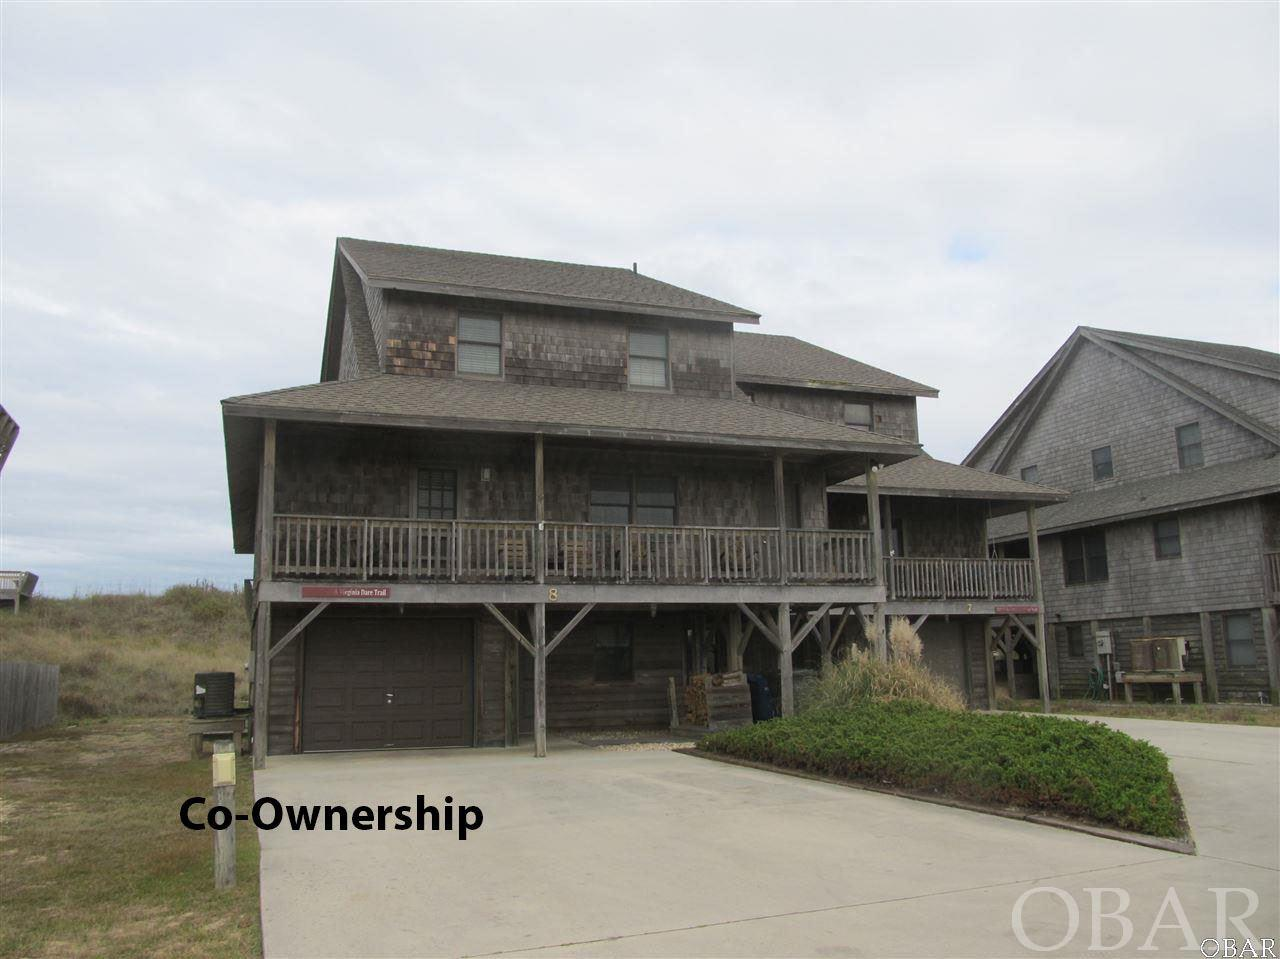 Easy, care free, and all inclusive oceanfront Co-ownership. This Duplex in Five Seasons covers all your needs.  Own a 1/10 co-ownership or 5 rotating weeks in this beautiful oceanfront Nags Head home. Walk out your door to the beach and enjoy the ocean. Every year the weeks rotate so everyone can enjoy winter, fall, spring and summer in their home.  Owners do trade weeks as well to fit their schedules with other owners. Hassle free, care free living is yours because the association dues pay for all expenses - taxes, insurance, cable and all utilities. Beautiful Ocean Views. Tastefully furnished 4 bedrooms, 3 bath, laundry area, outdoor shower, grilling area and garage with storage and owners lockable storage area.  Master boast a huge jetted tub and separate shower Decks front and back with expansive views.   Spacious open floor plan in kitchen and living area.  What a great opportunity to vacation in an oceanfront home at a fraction of the cost. Owners may rent the weeks they chose not to enjoy themselves. **2019 scheduled weeks for this ownership:** 5/17-5/30; 8/16-8/22; 11/8-11/14; 2/21/2020-2/27/2020